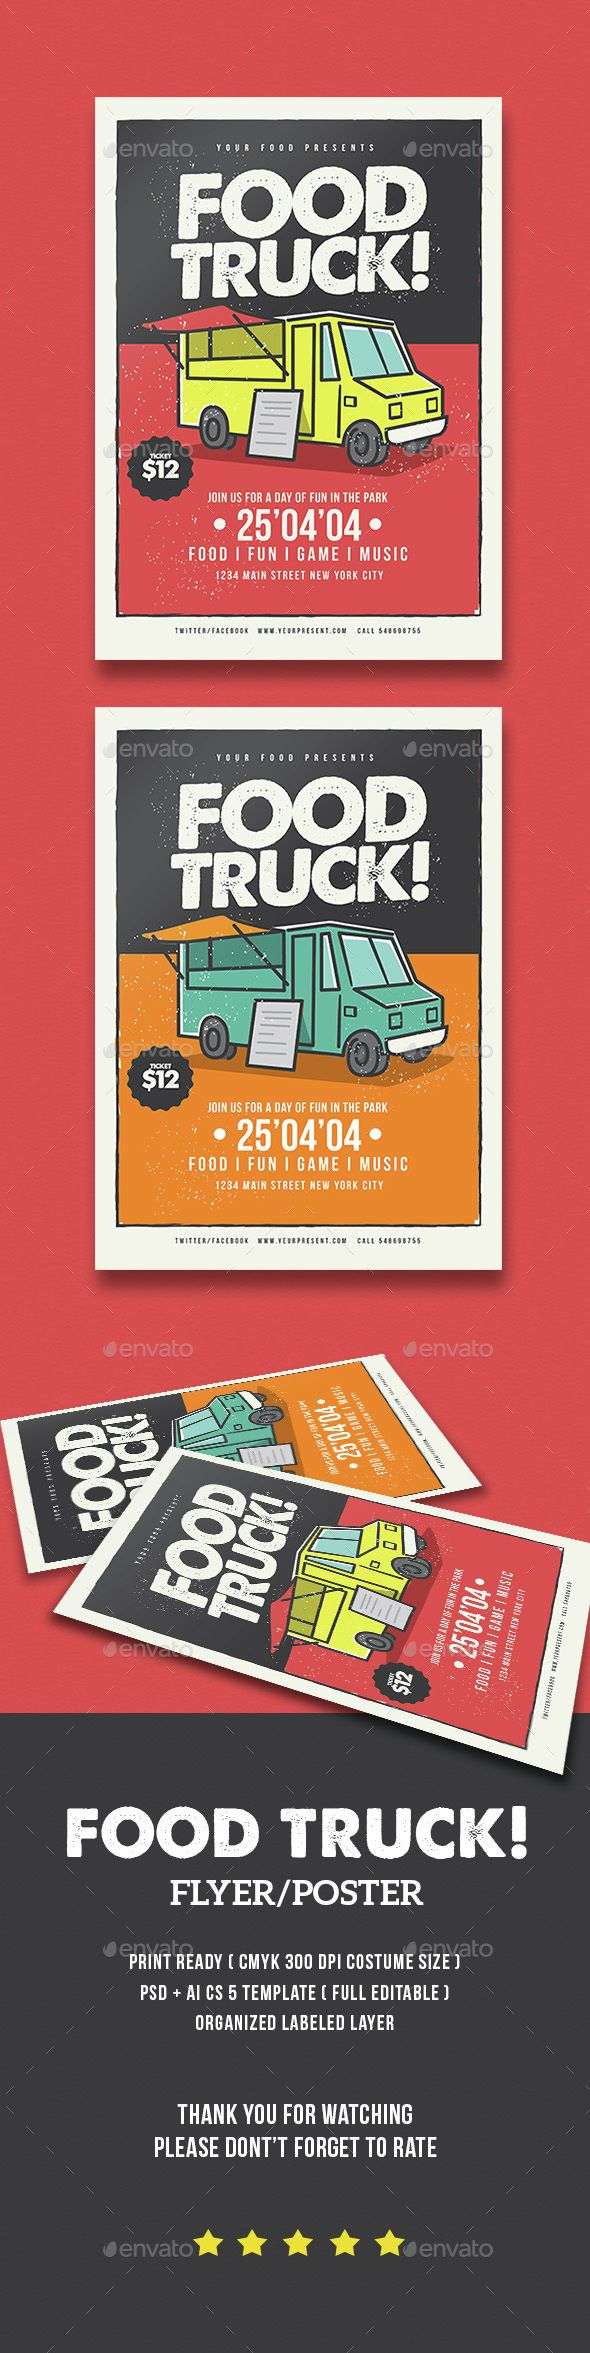 Pin By Best Graphic Design On Flyer Templates Food Poster Truck